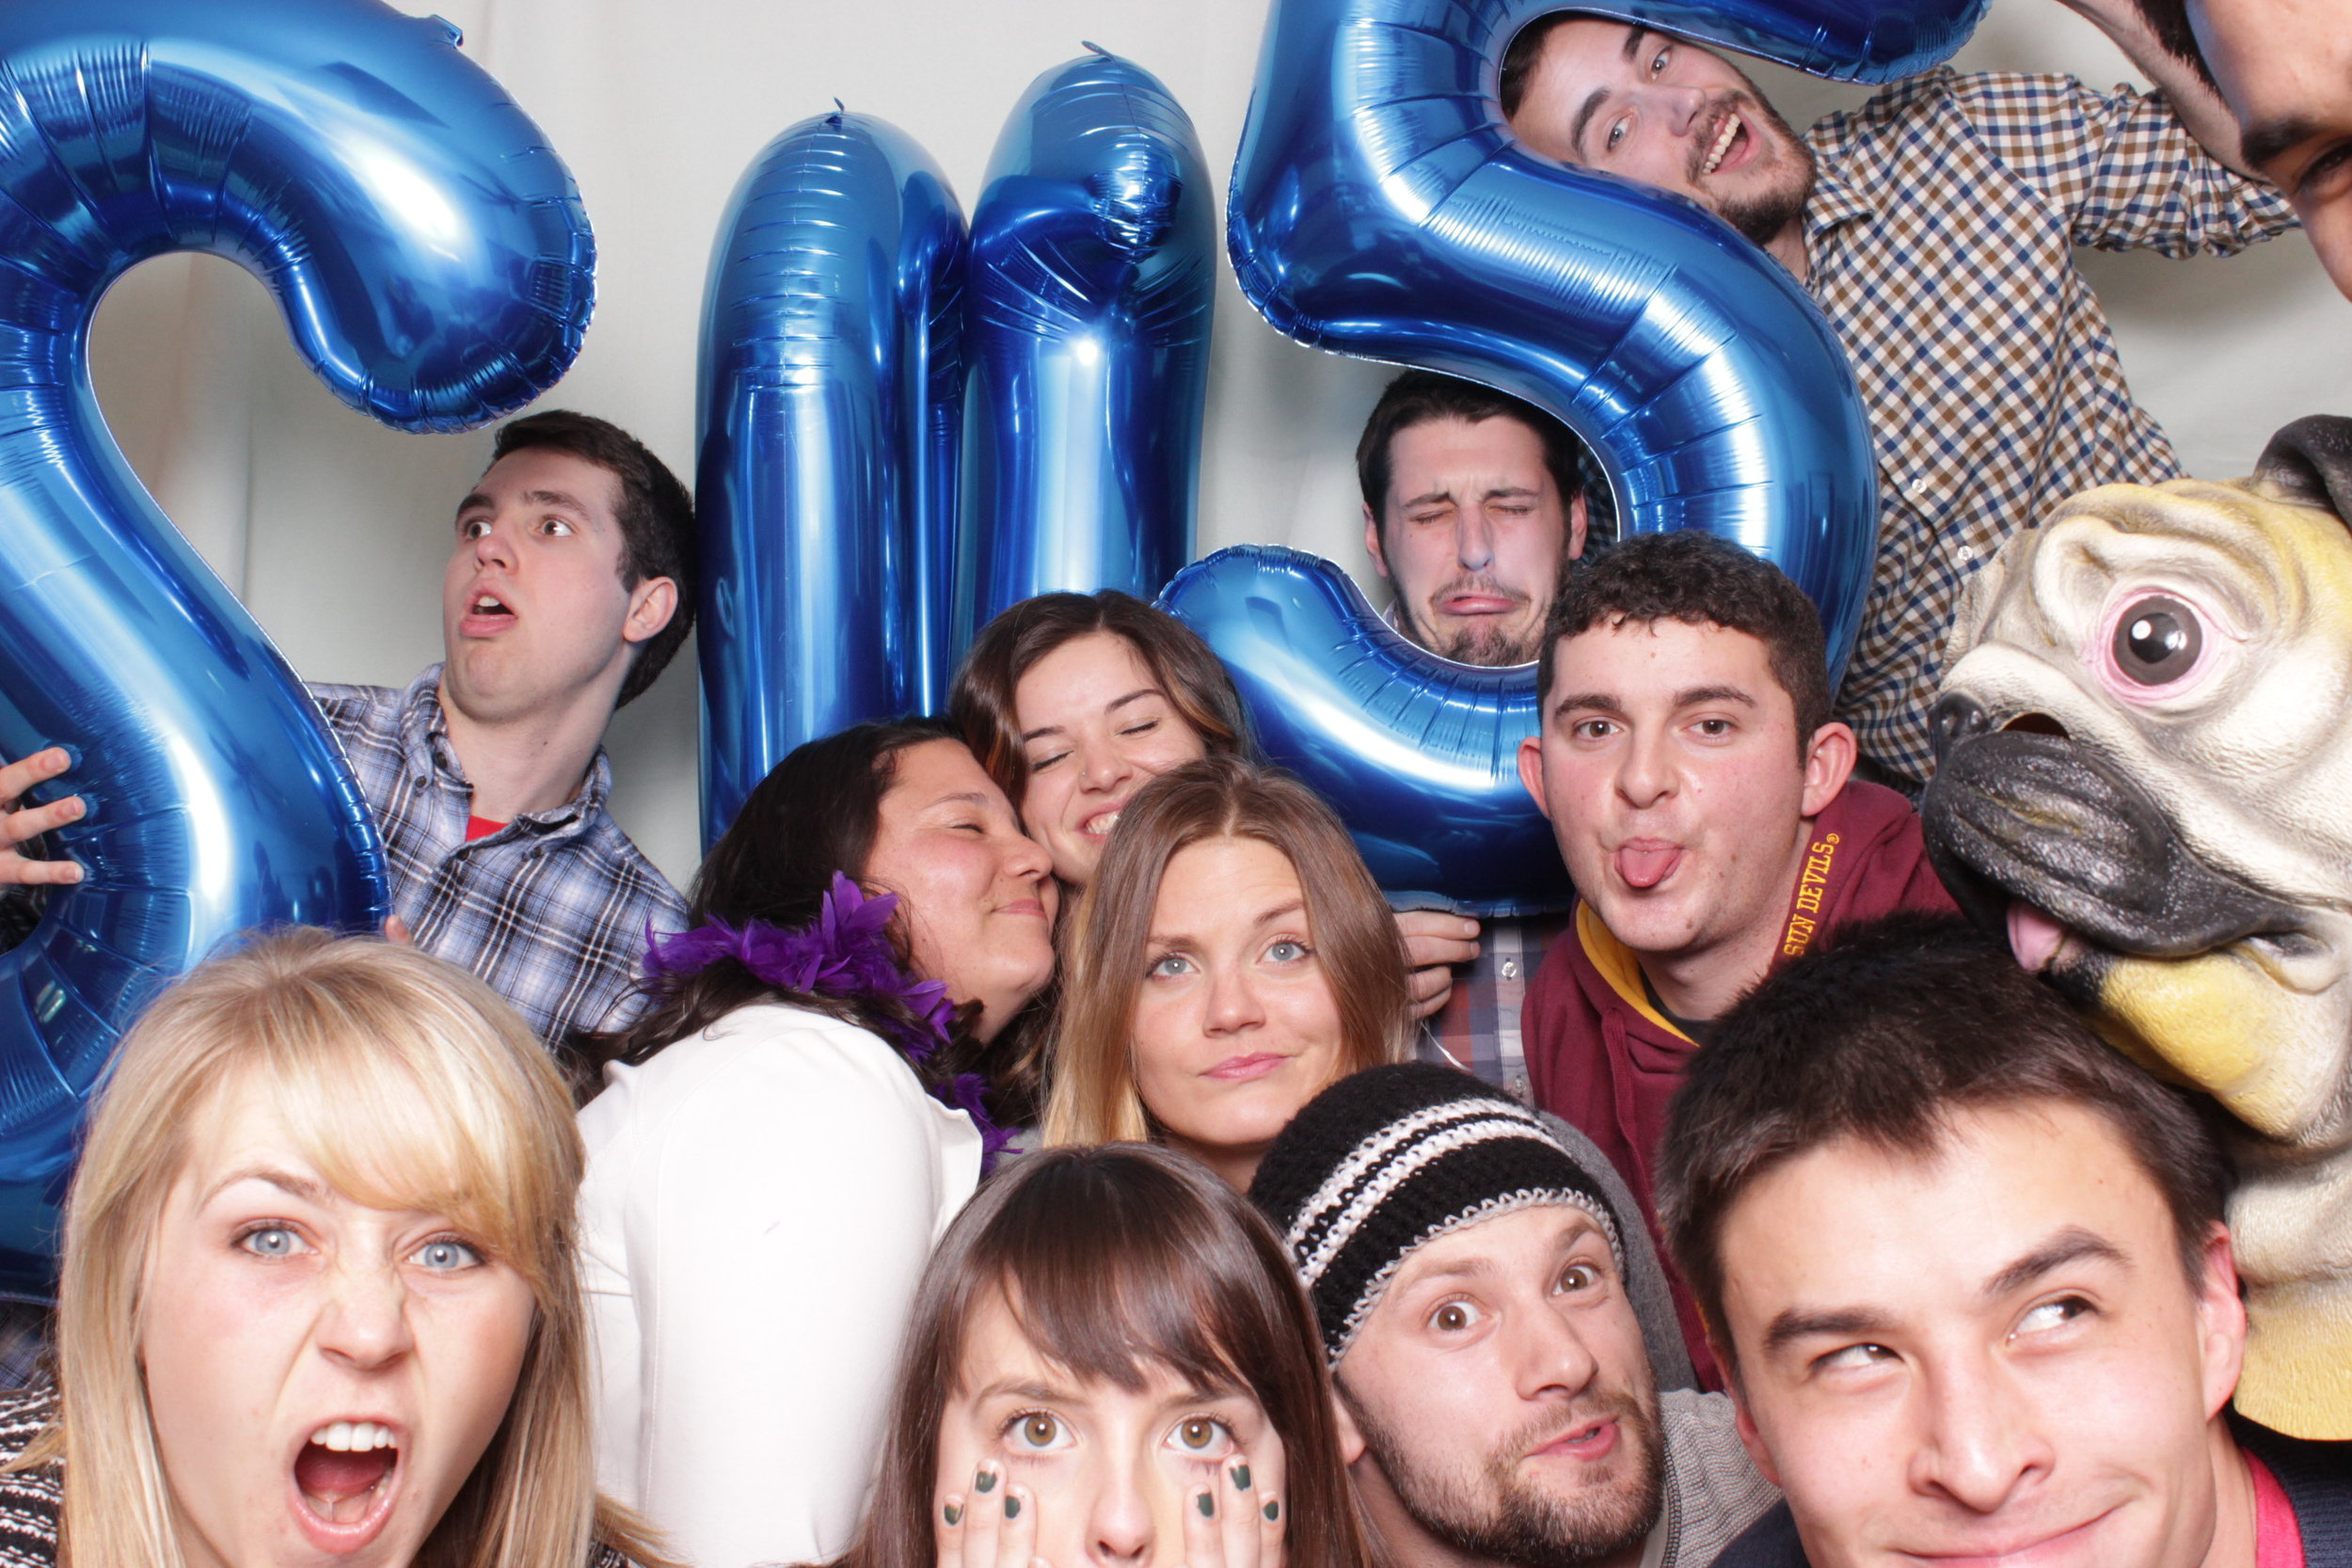 photo-booth-rental-in-chico-california-new-years-party-group-shot-pug